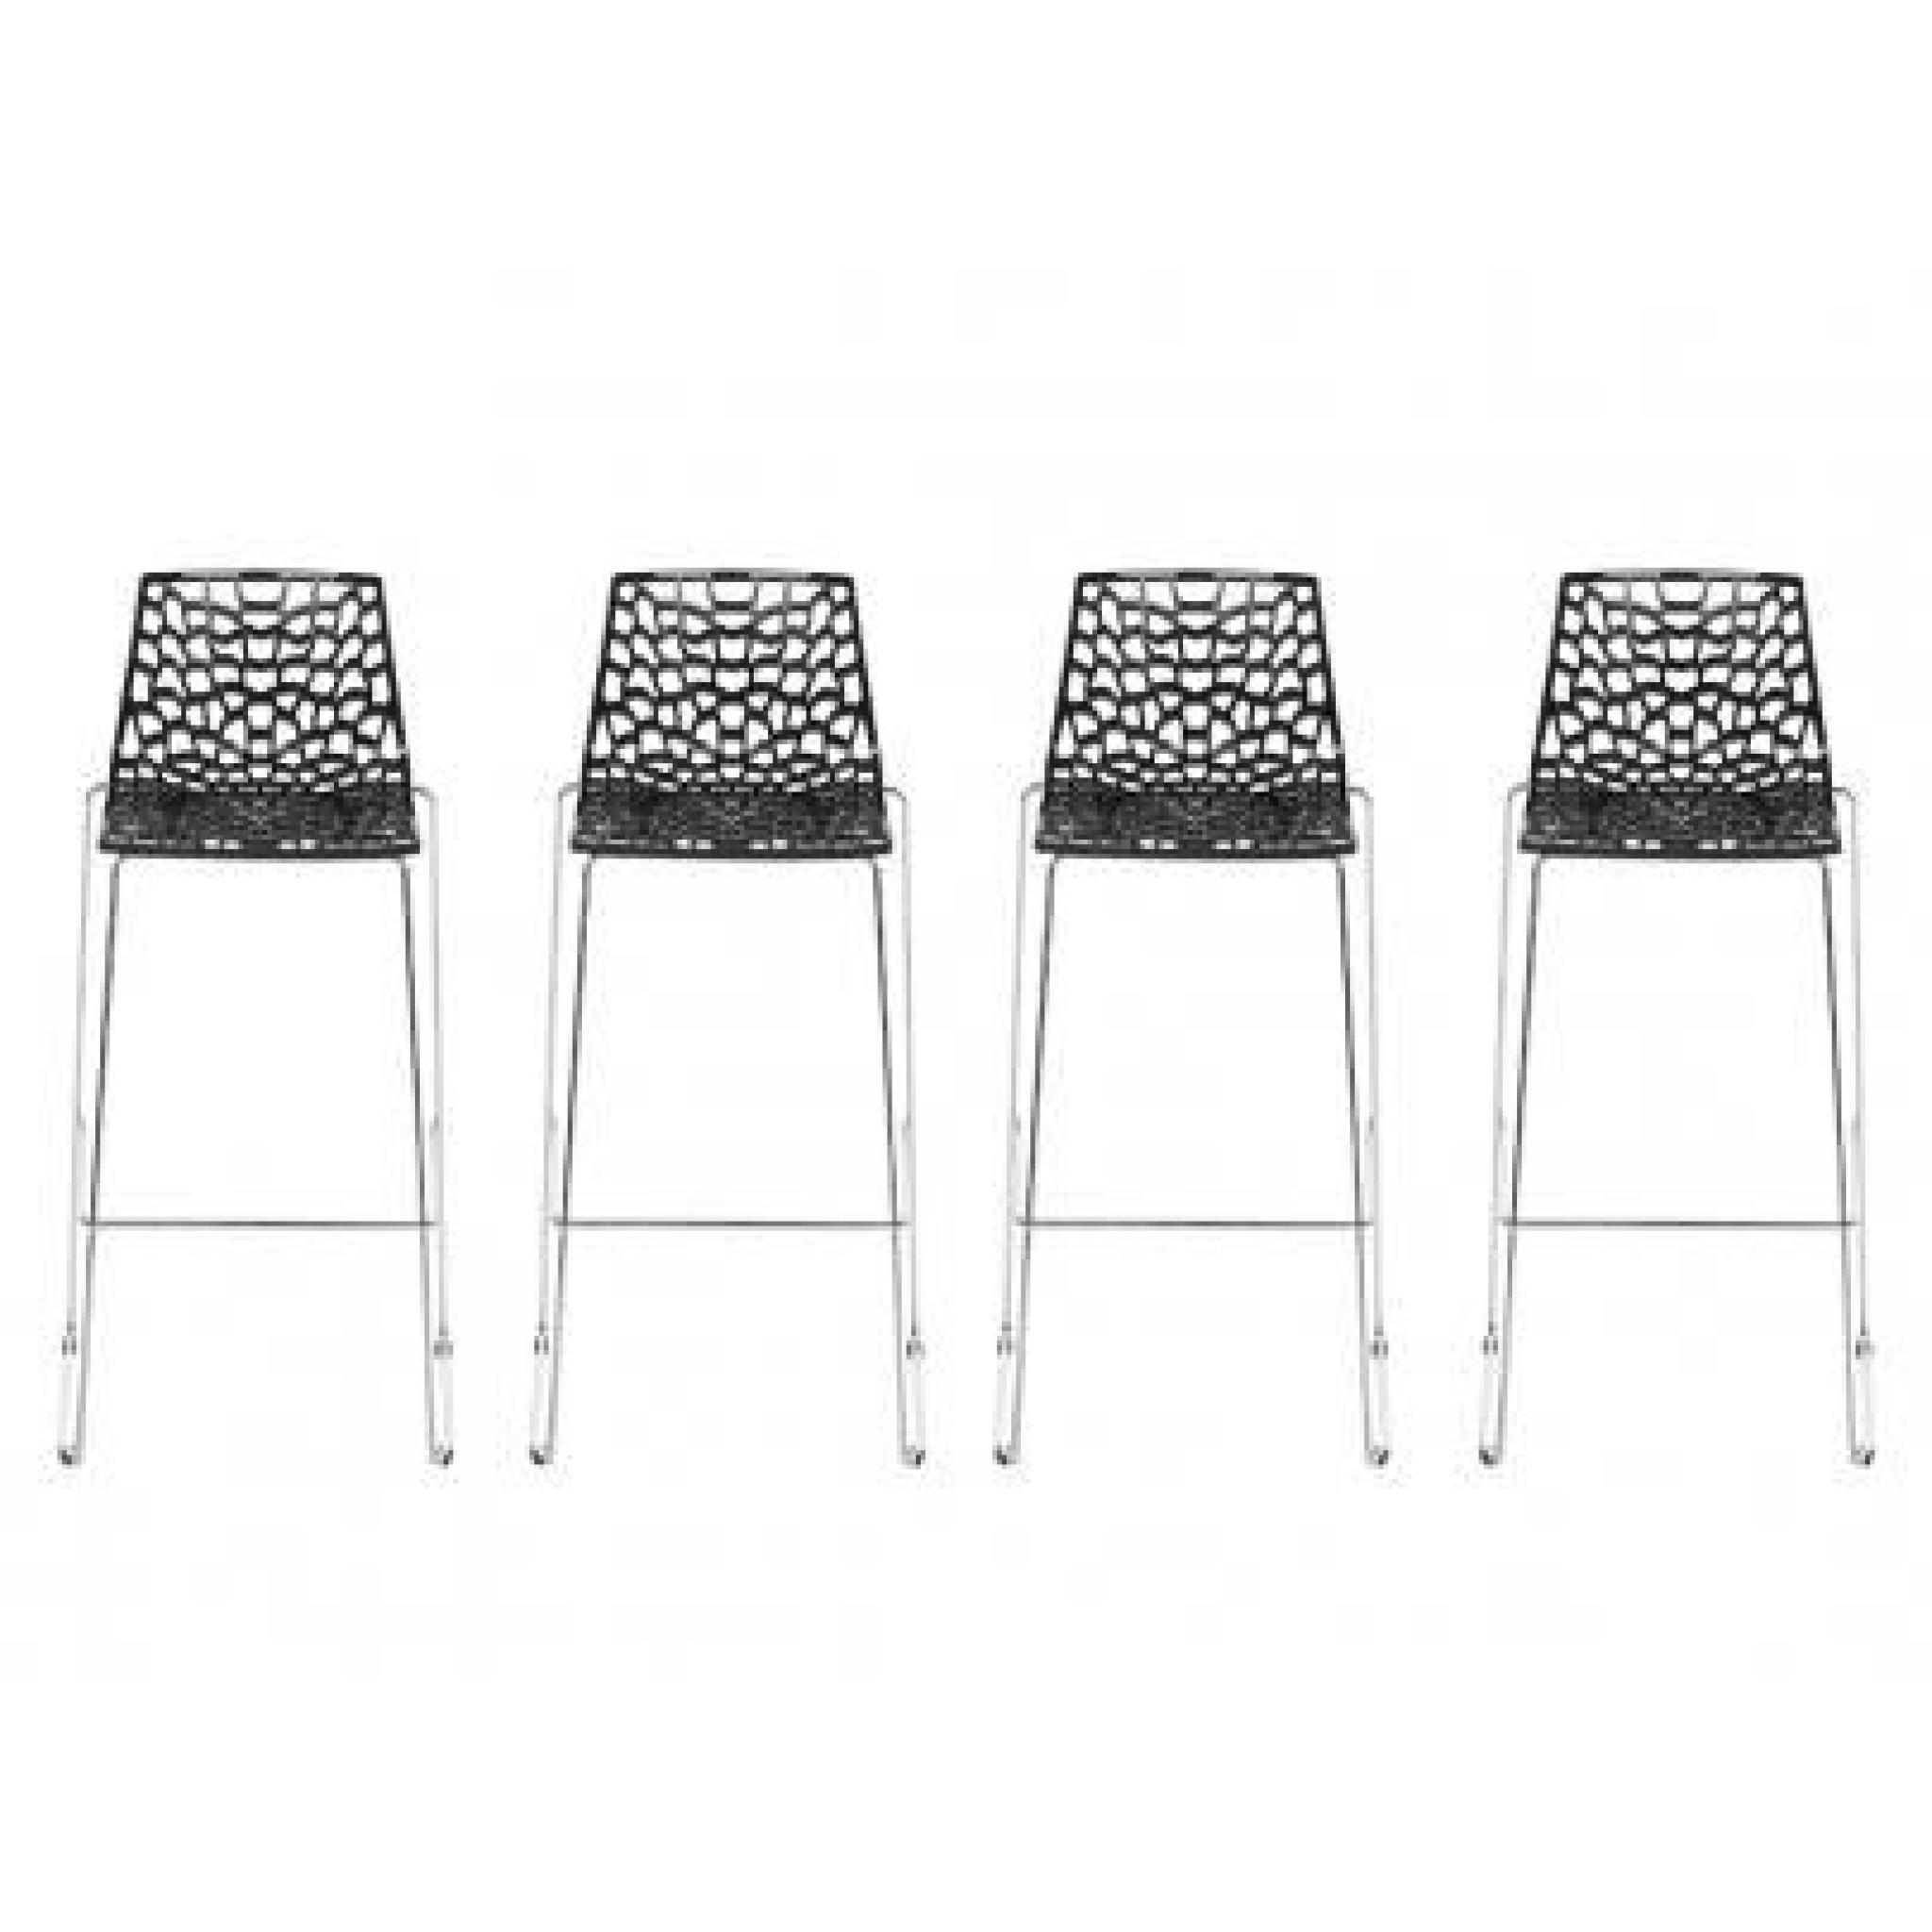 Tabourets De Bar Vente Unique Lot De 4 Tabourets De Bar Wilton 4 Pieds Polypropylène Noir Graphite